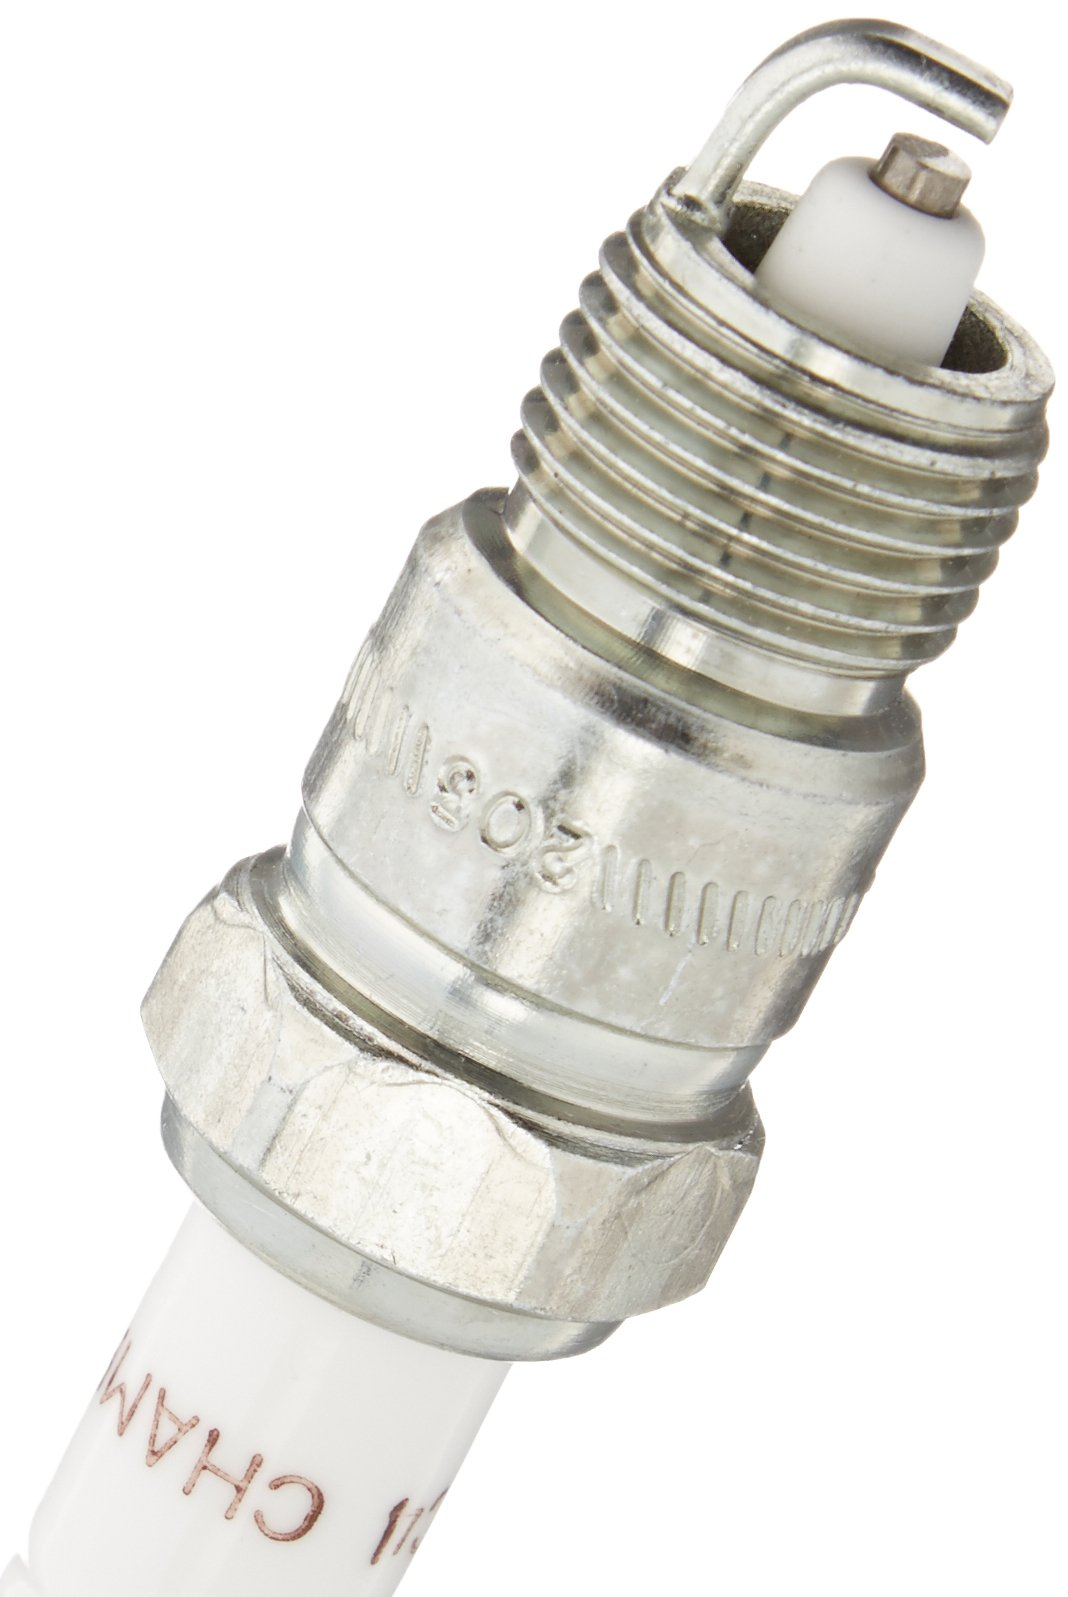 Champion (18S) RV15YC4 S Traditional Spark Plug, Pack of 24 by Champion (Image #2)